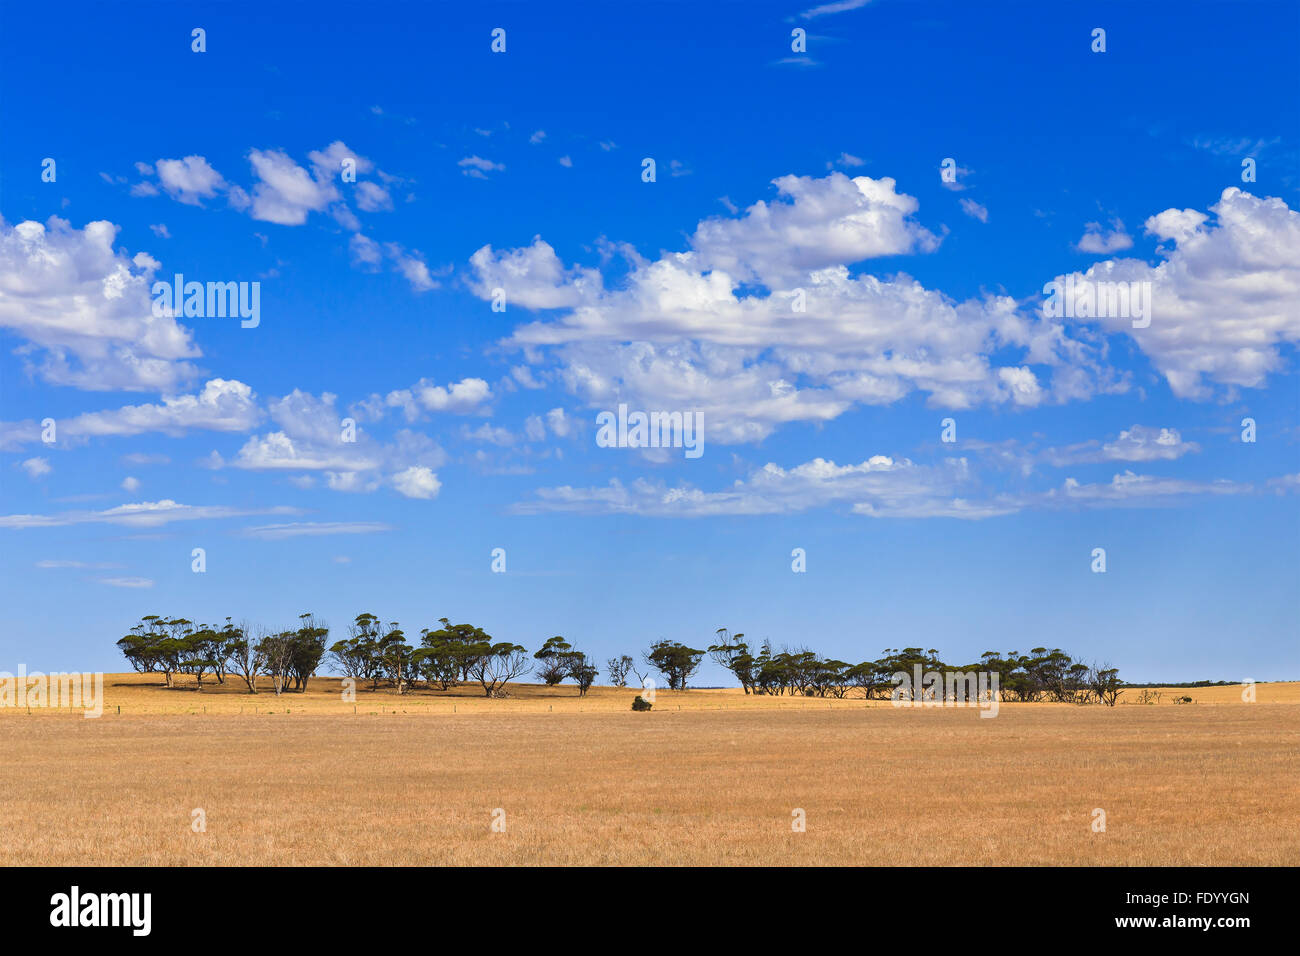 endless cultivated farm fields of wheat in South AUstralia on  a sunny day with distant group of eucalyptus trees - Stock Image